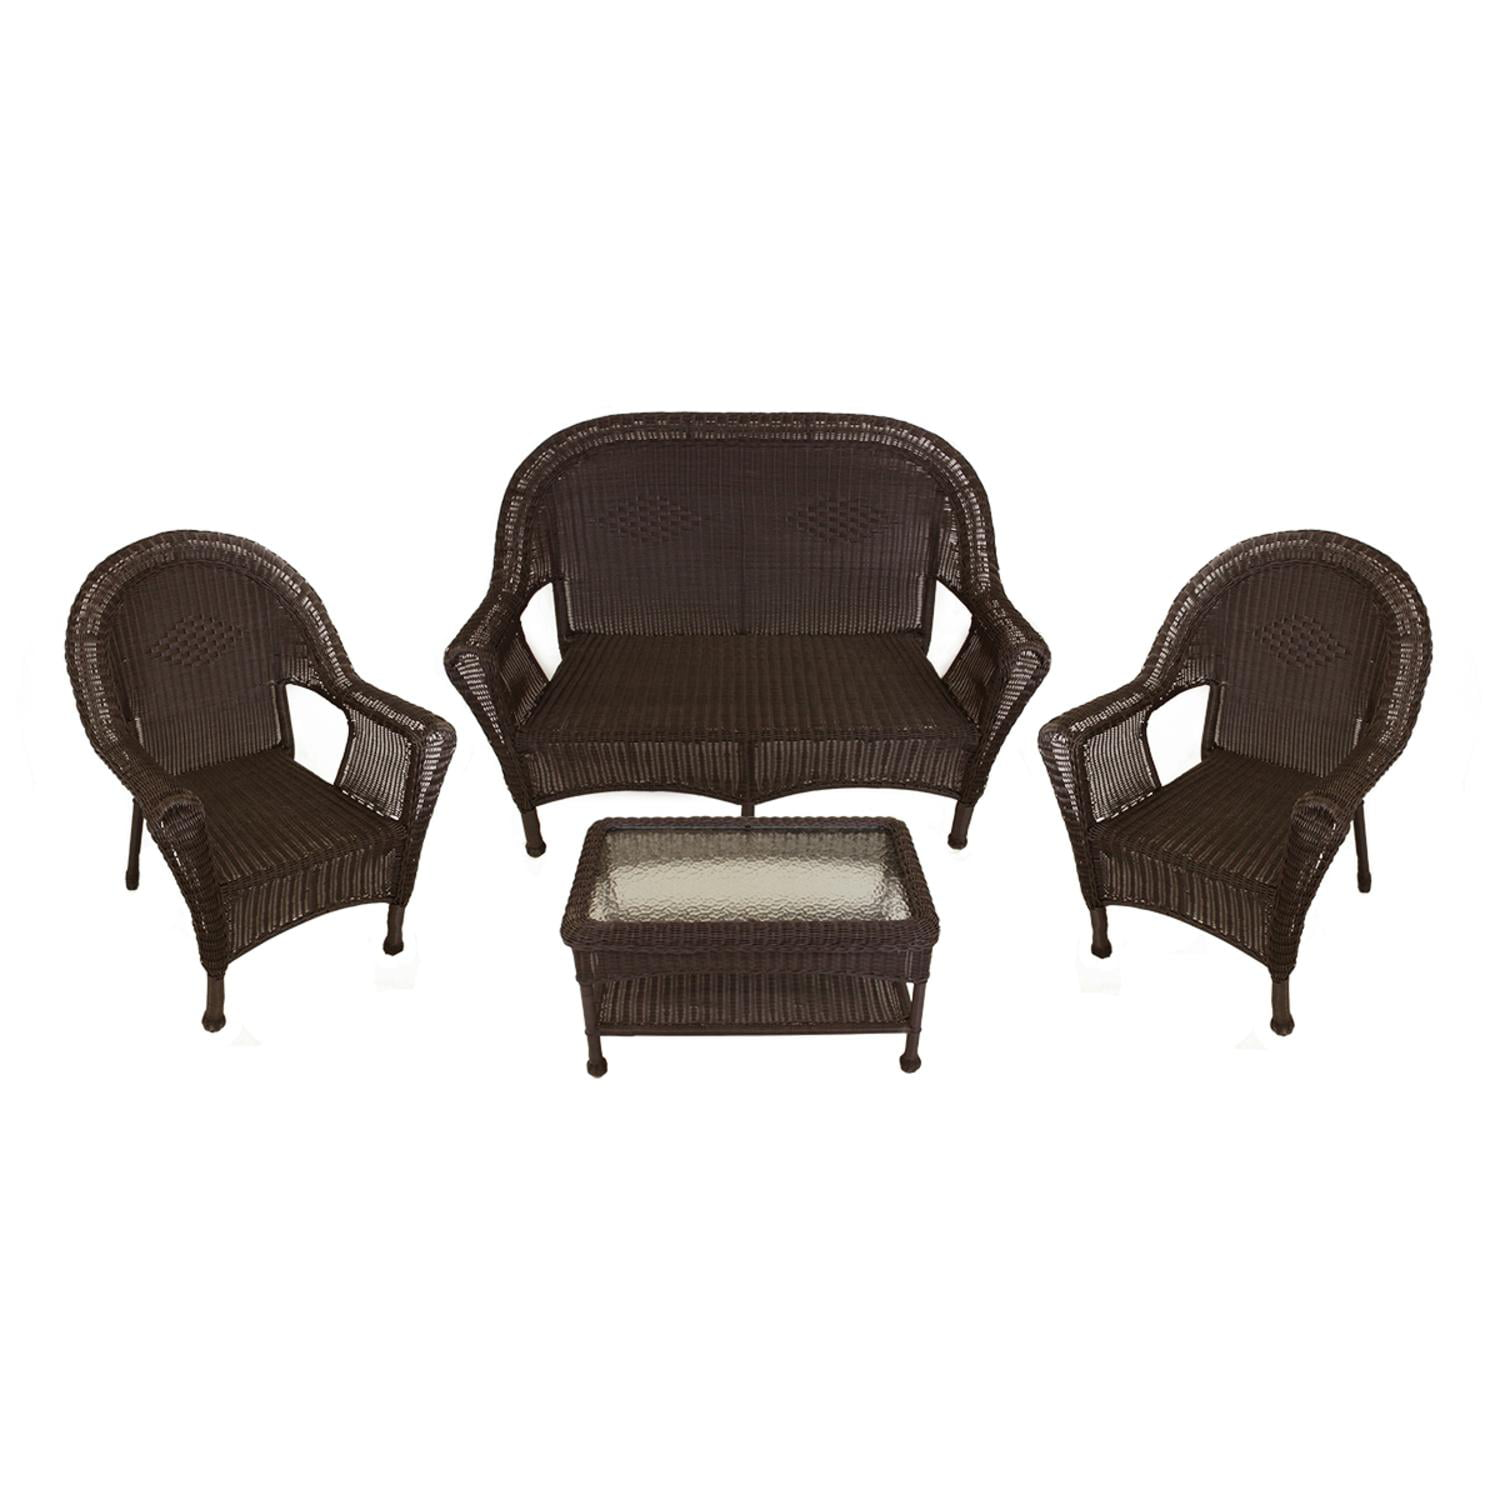 4piece brown resin wicker patio furniture set 2 chairs loveseat u0026 table walmartcom